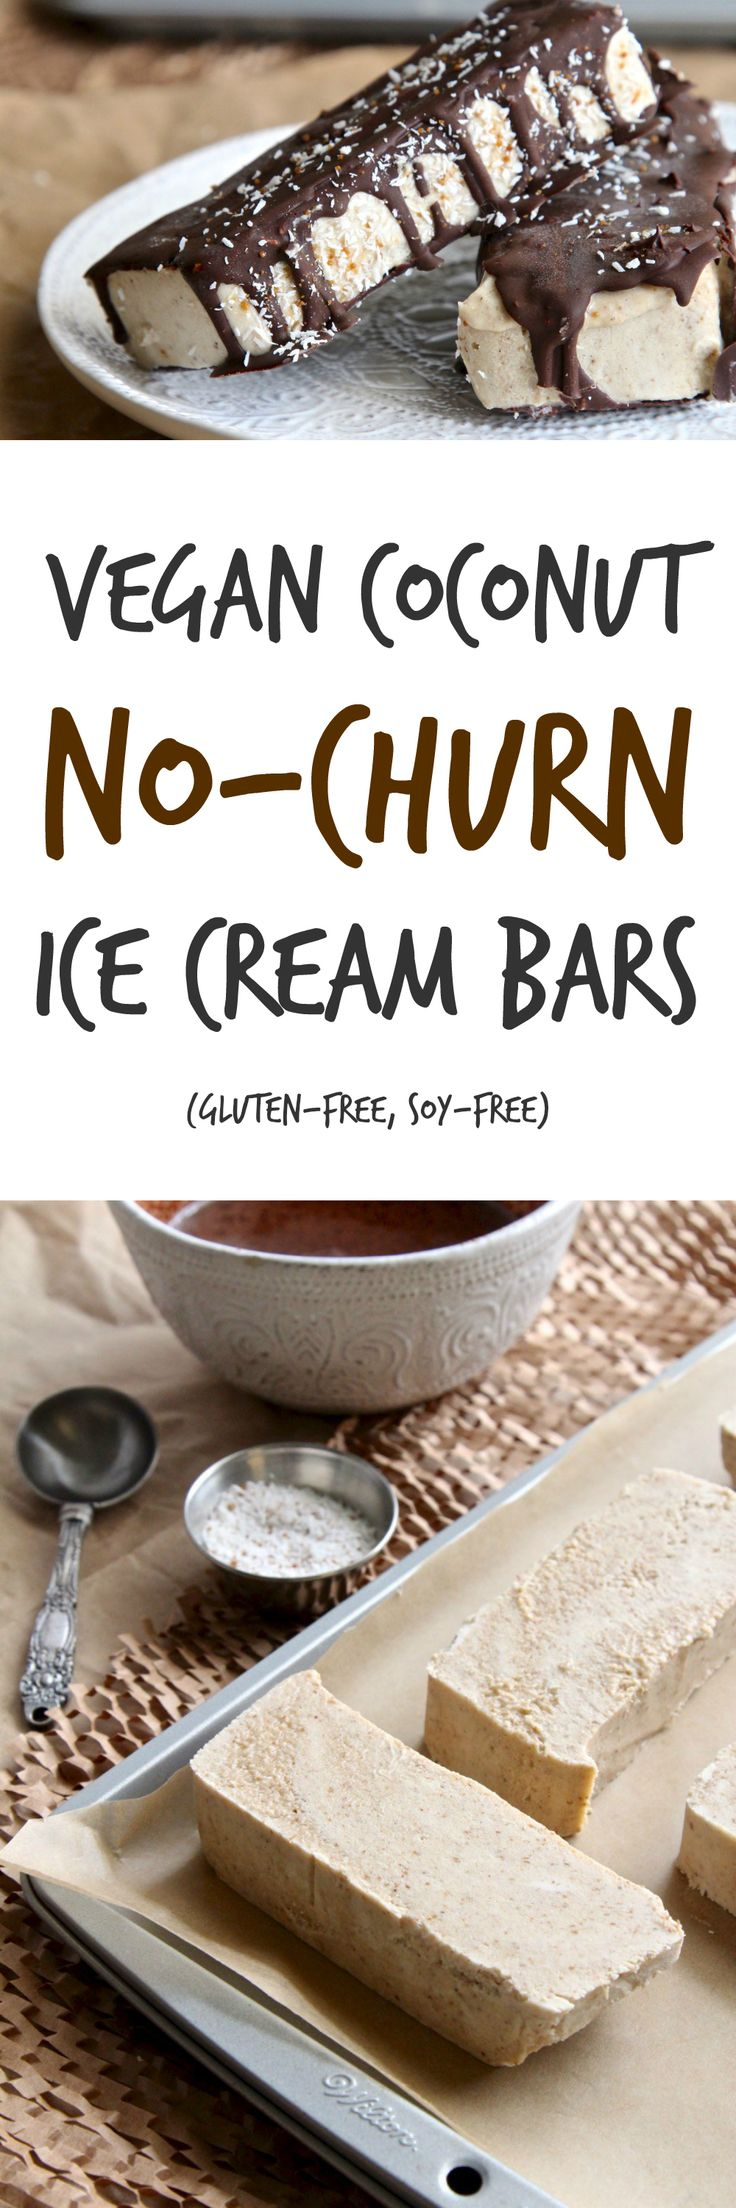 Coconut Caramel No-Churn Ice Cream Bars | Gluten-free, Vegan | The Plant…